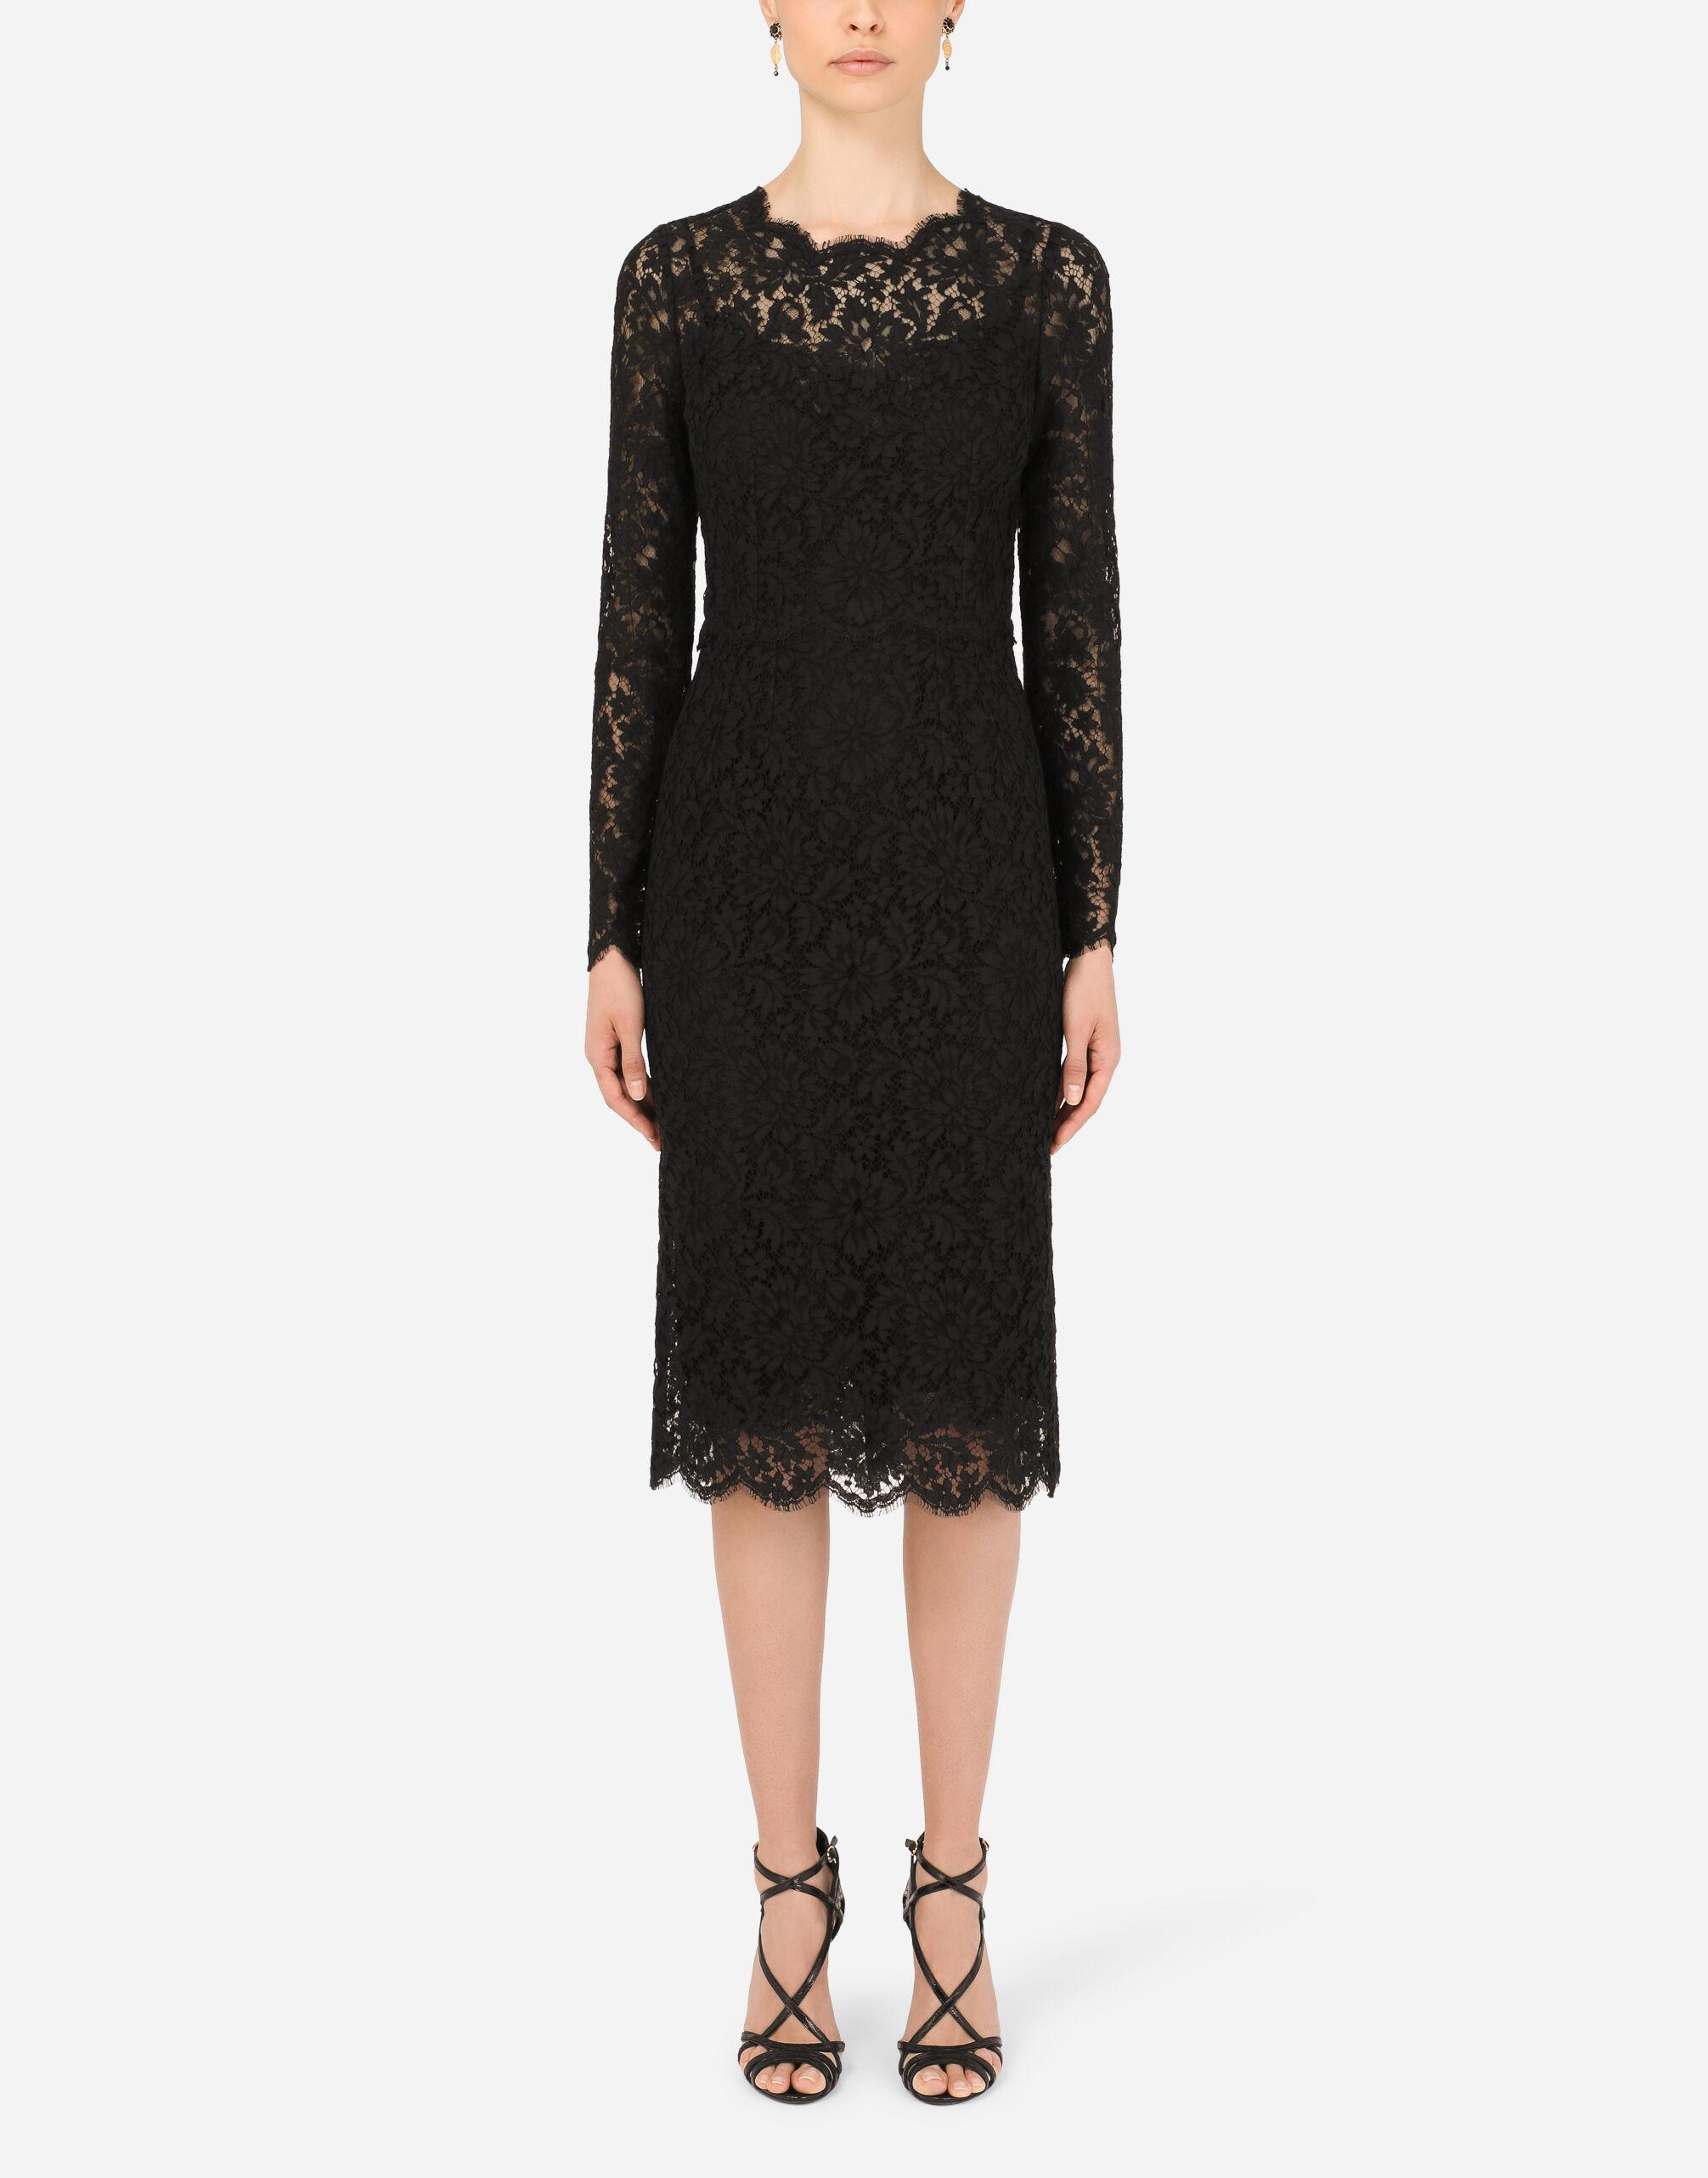 Long-sleeved calf-length dress in cordonetto lace